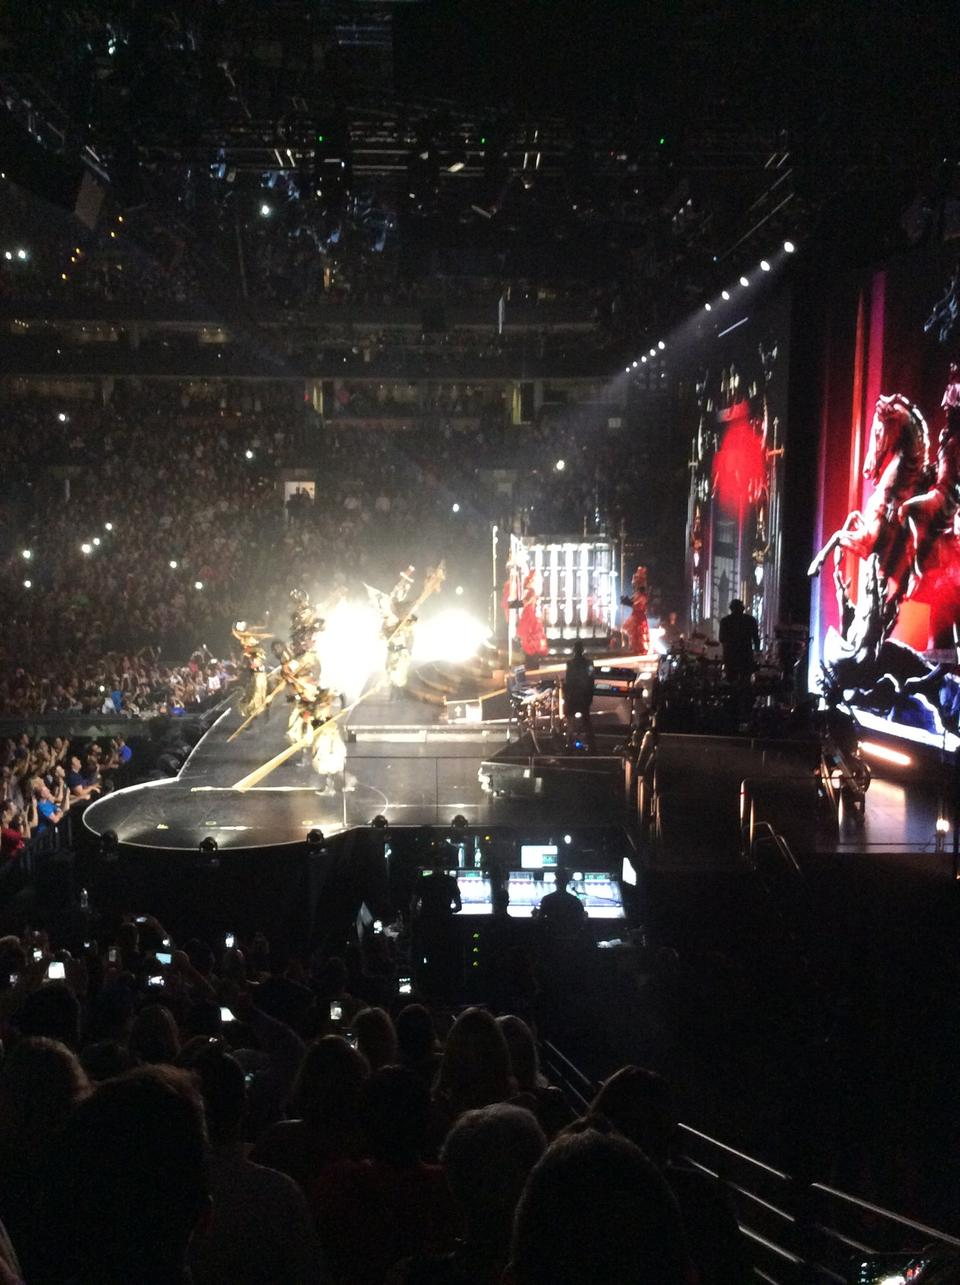 Td Garden Section 21 Concert Seating